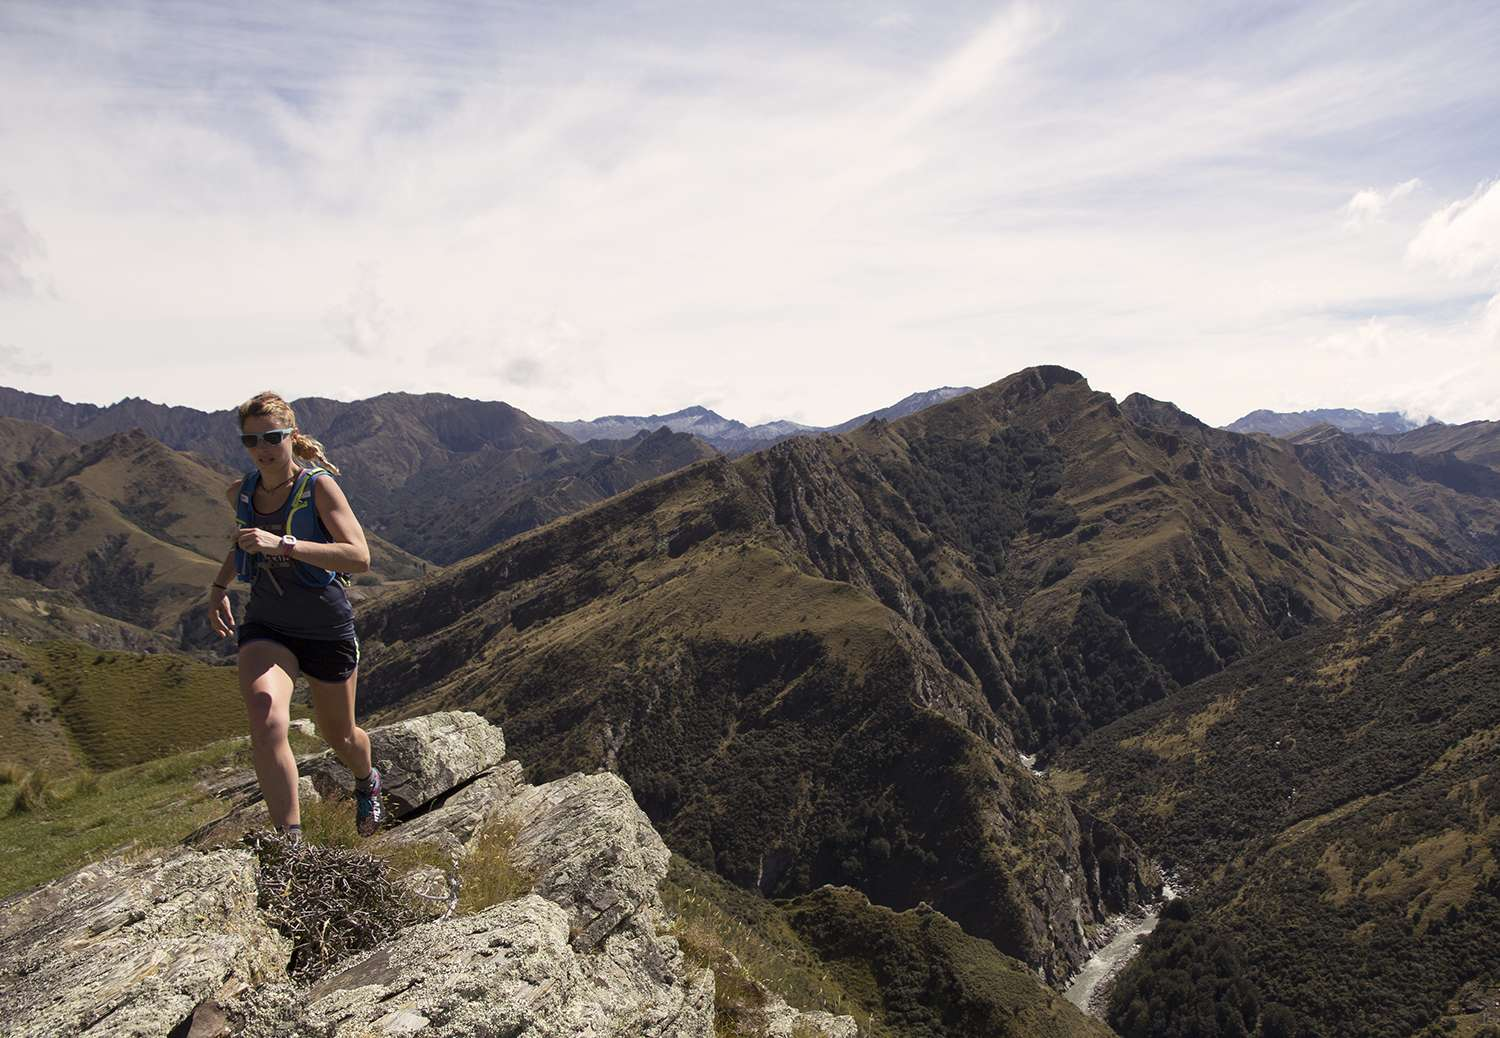 inov-8 blog world's best trails. NZ Mike Hopkins